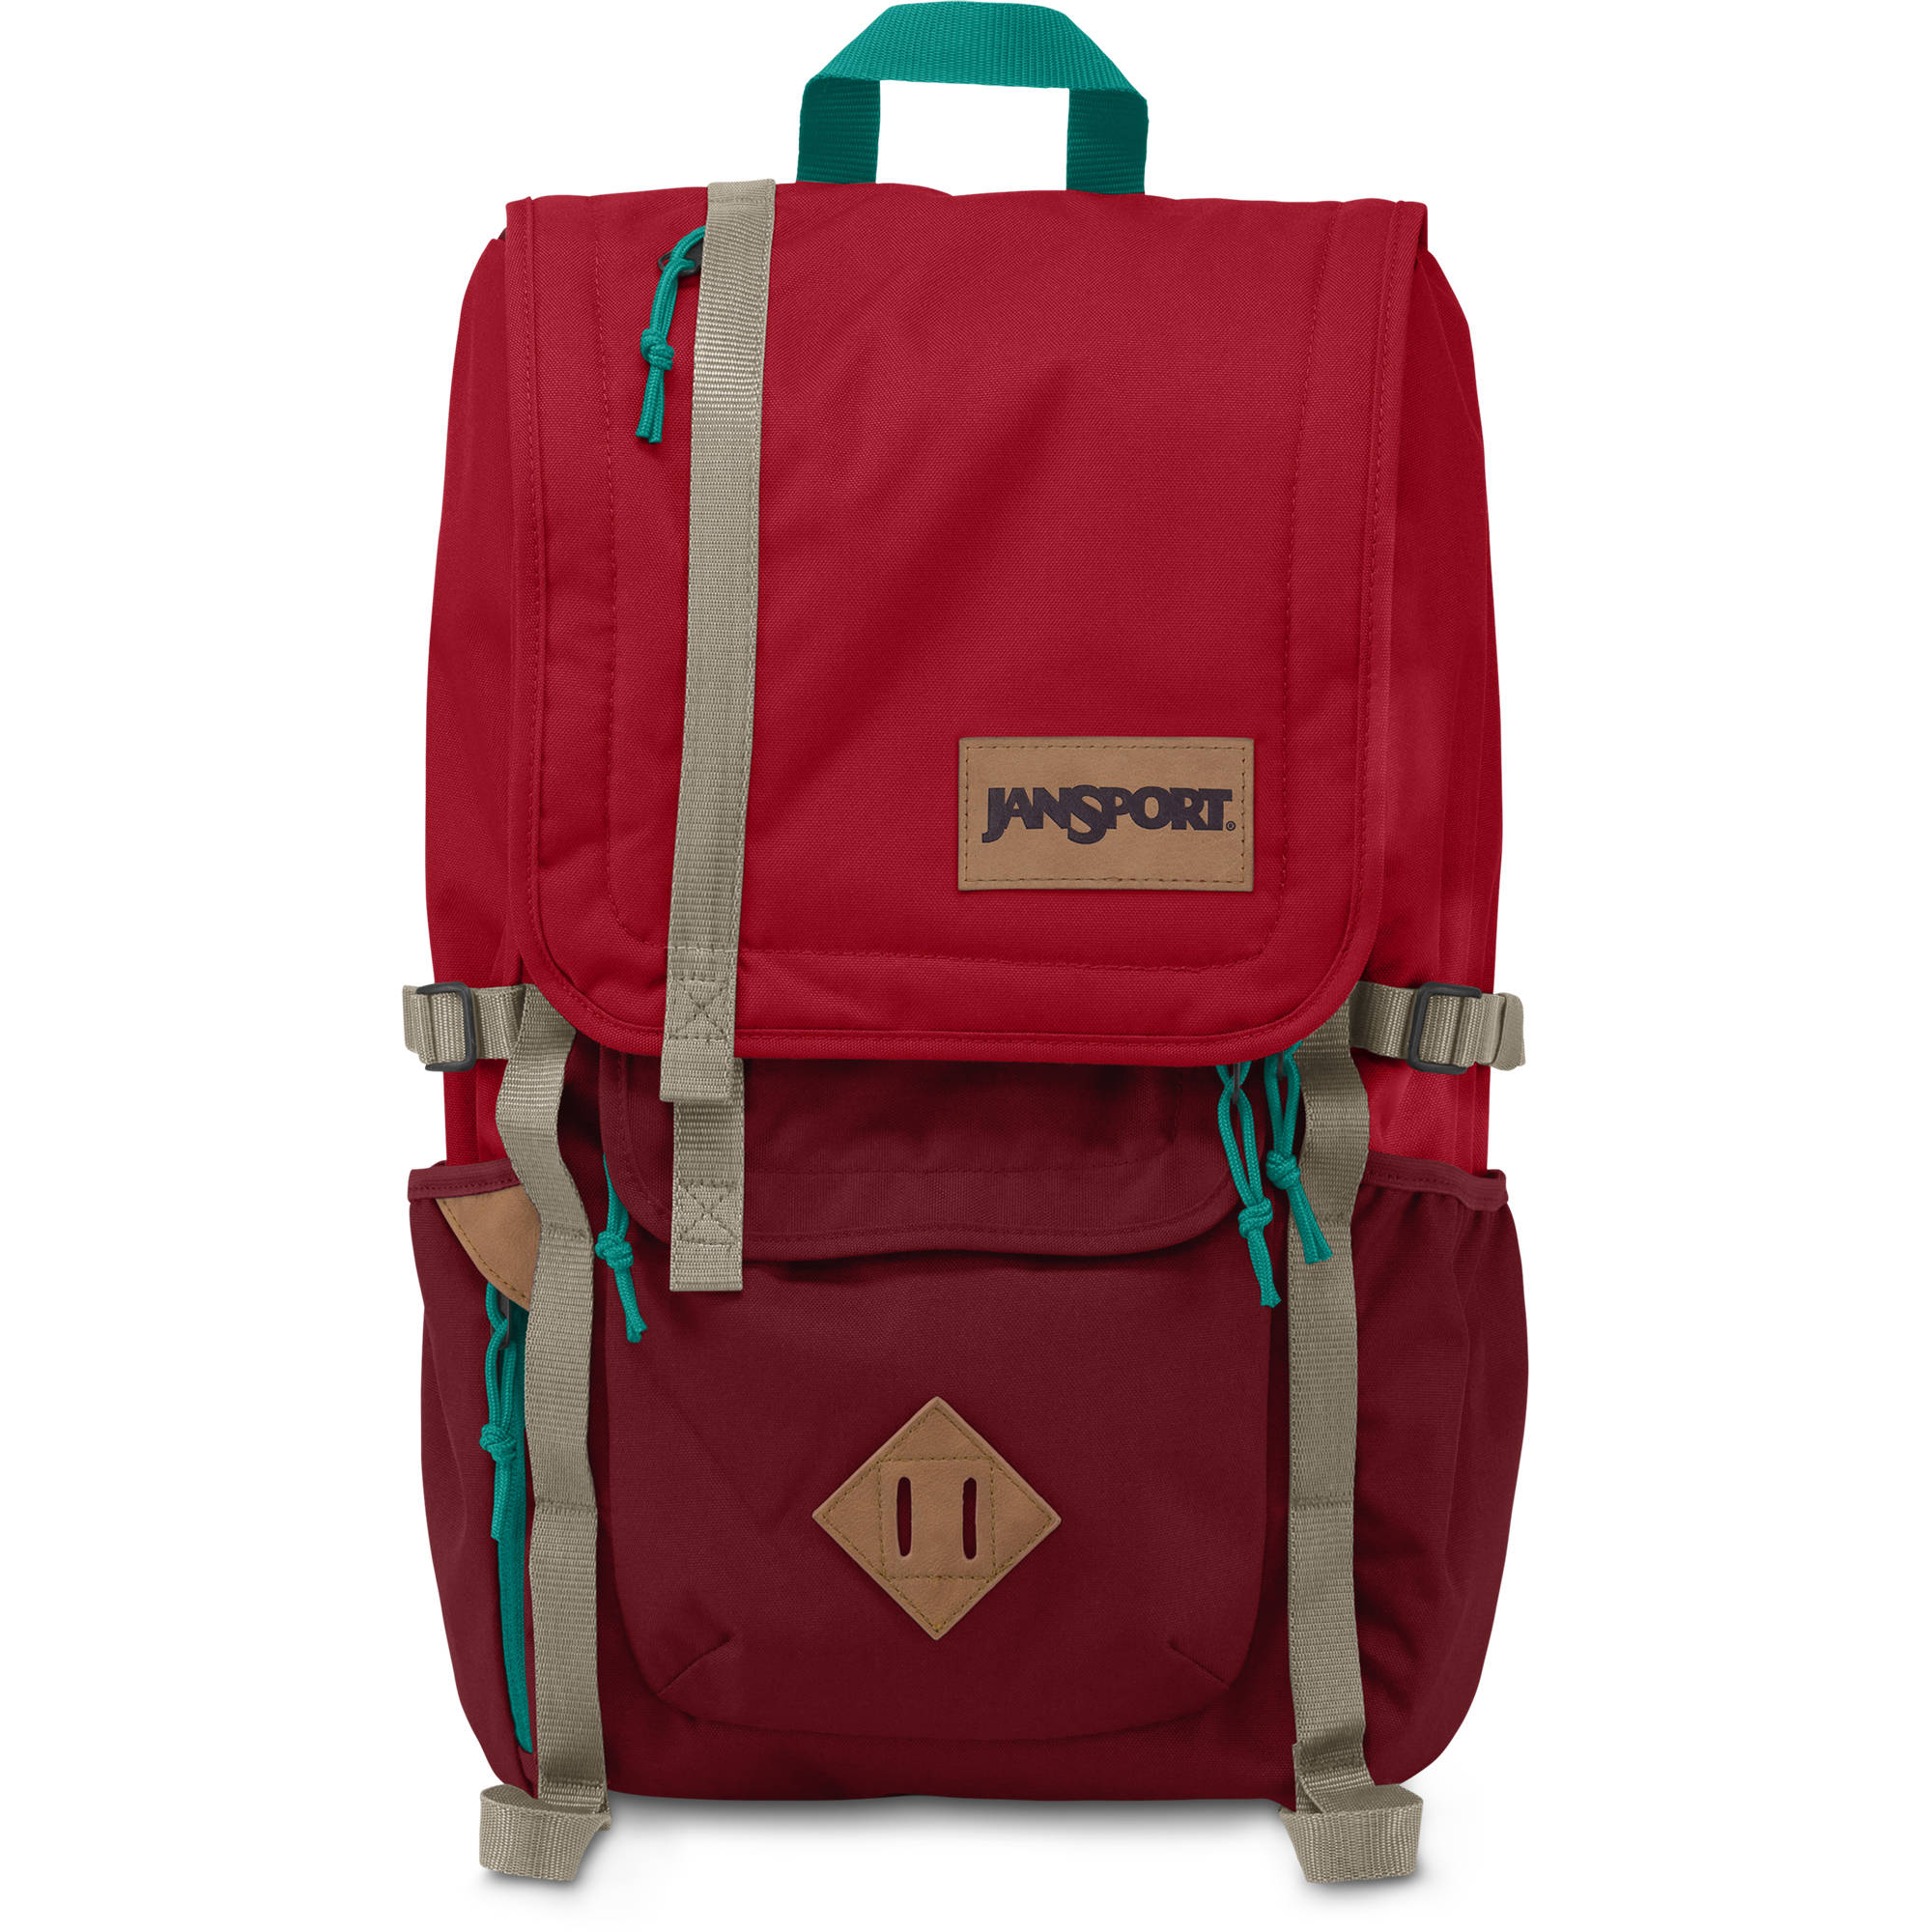 Jansport Red Backpack 6Lby2s8n